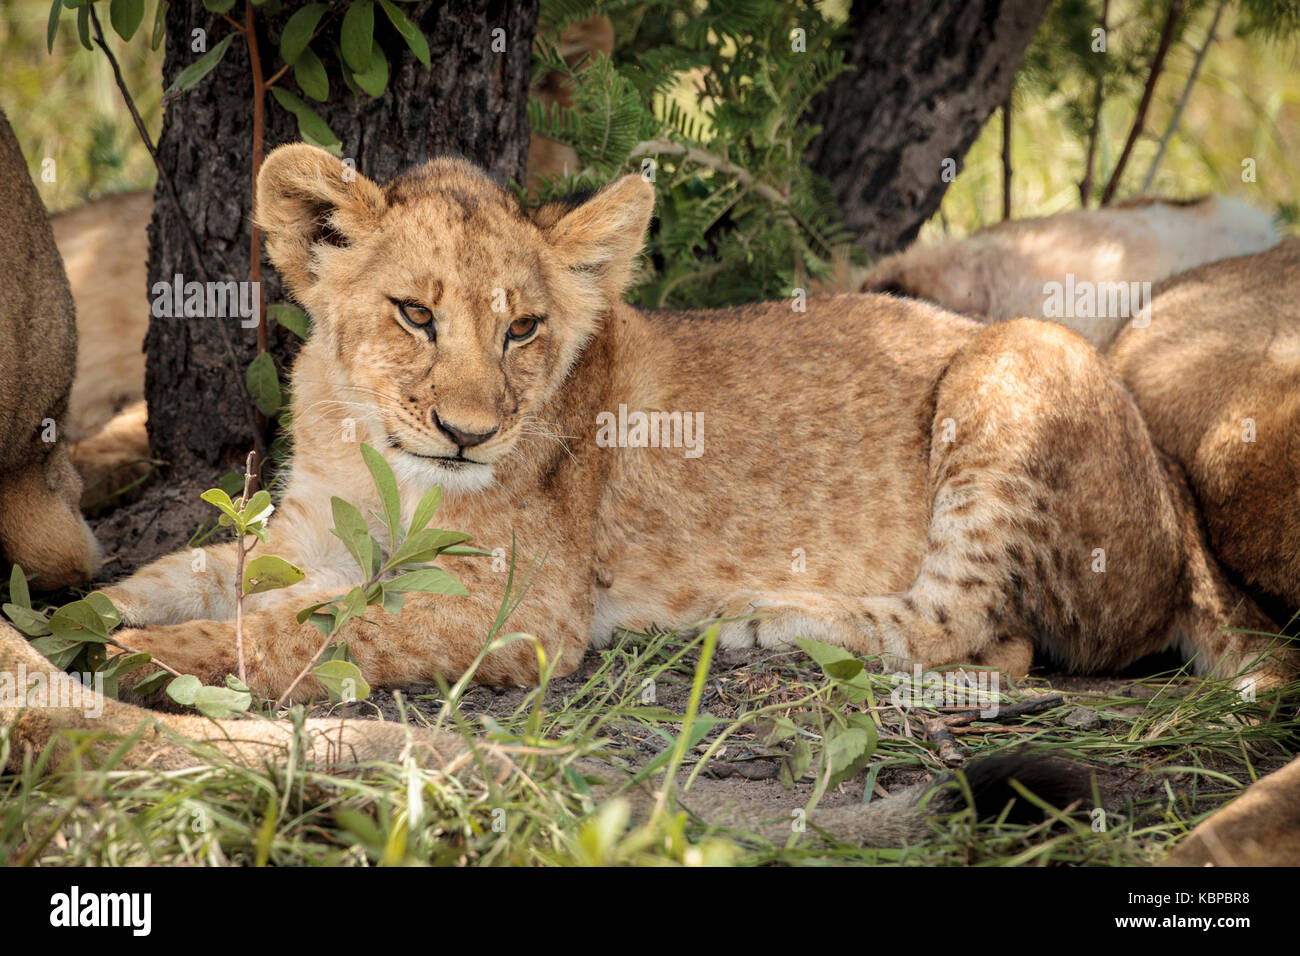 Portrait of African lions (Panthera leo) resting in the bush, cub with spots lying against tree Stock Photo